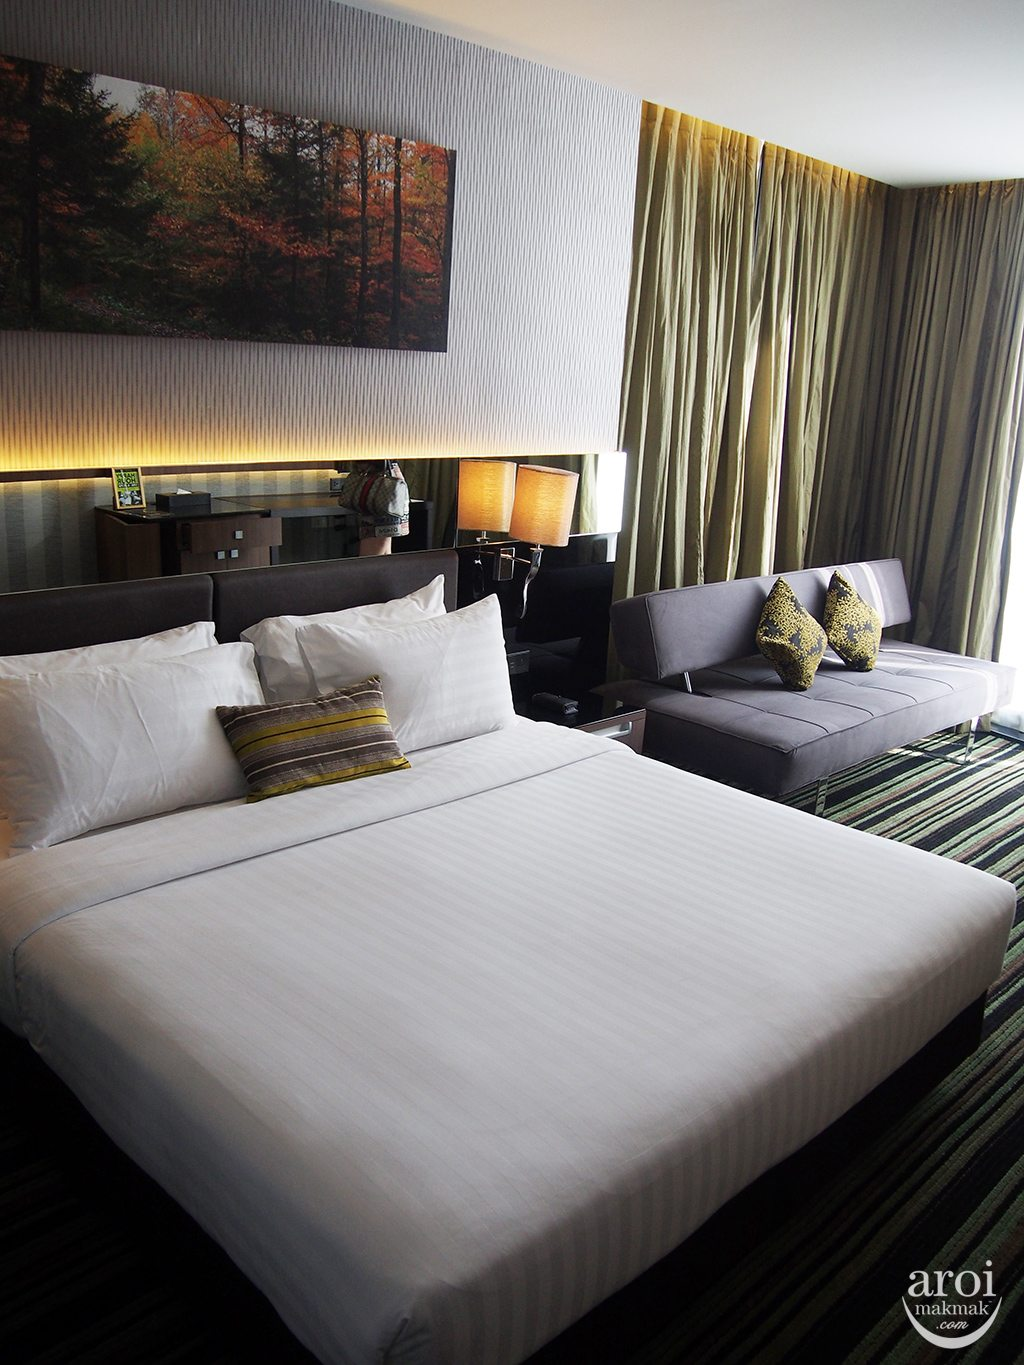 The Continent Hotel - Rooms